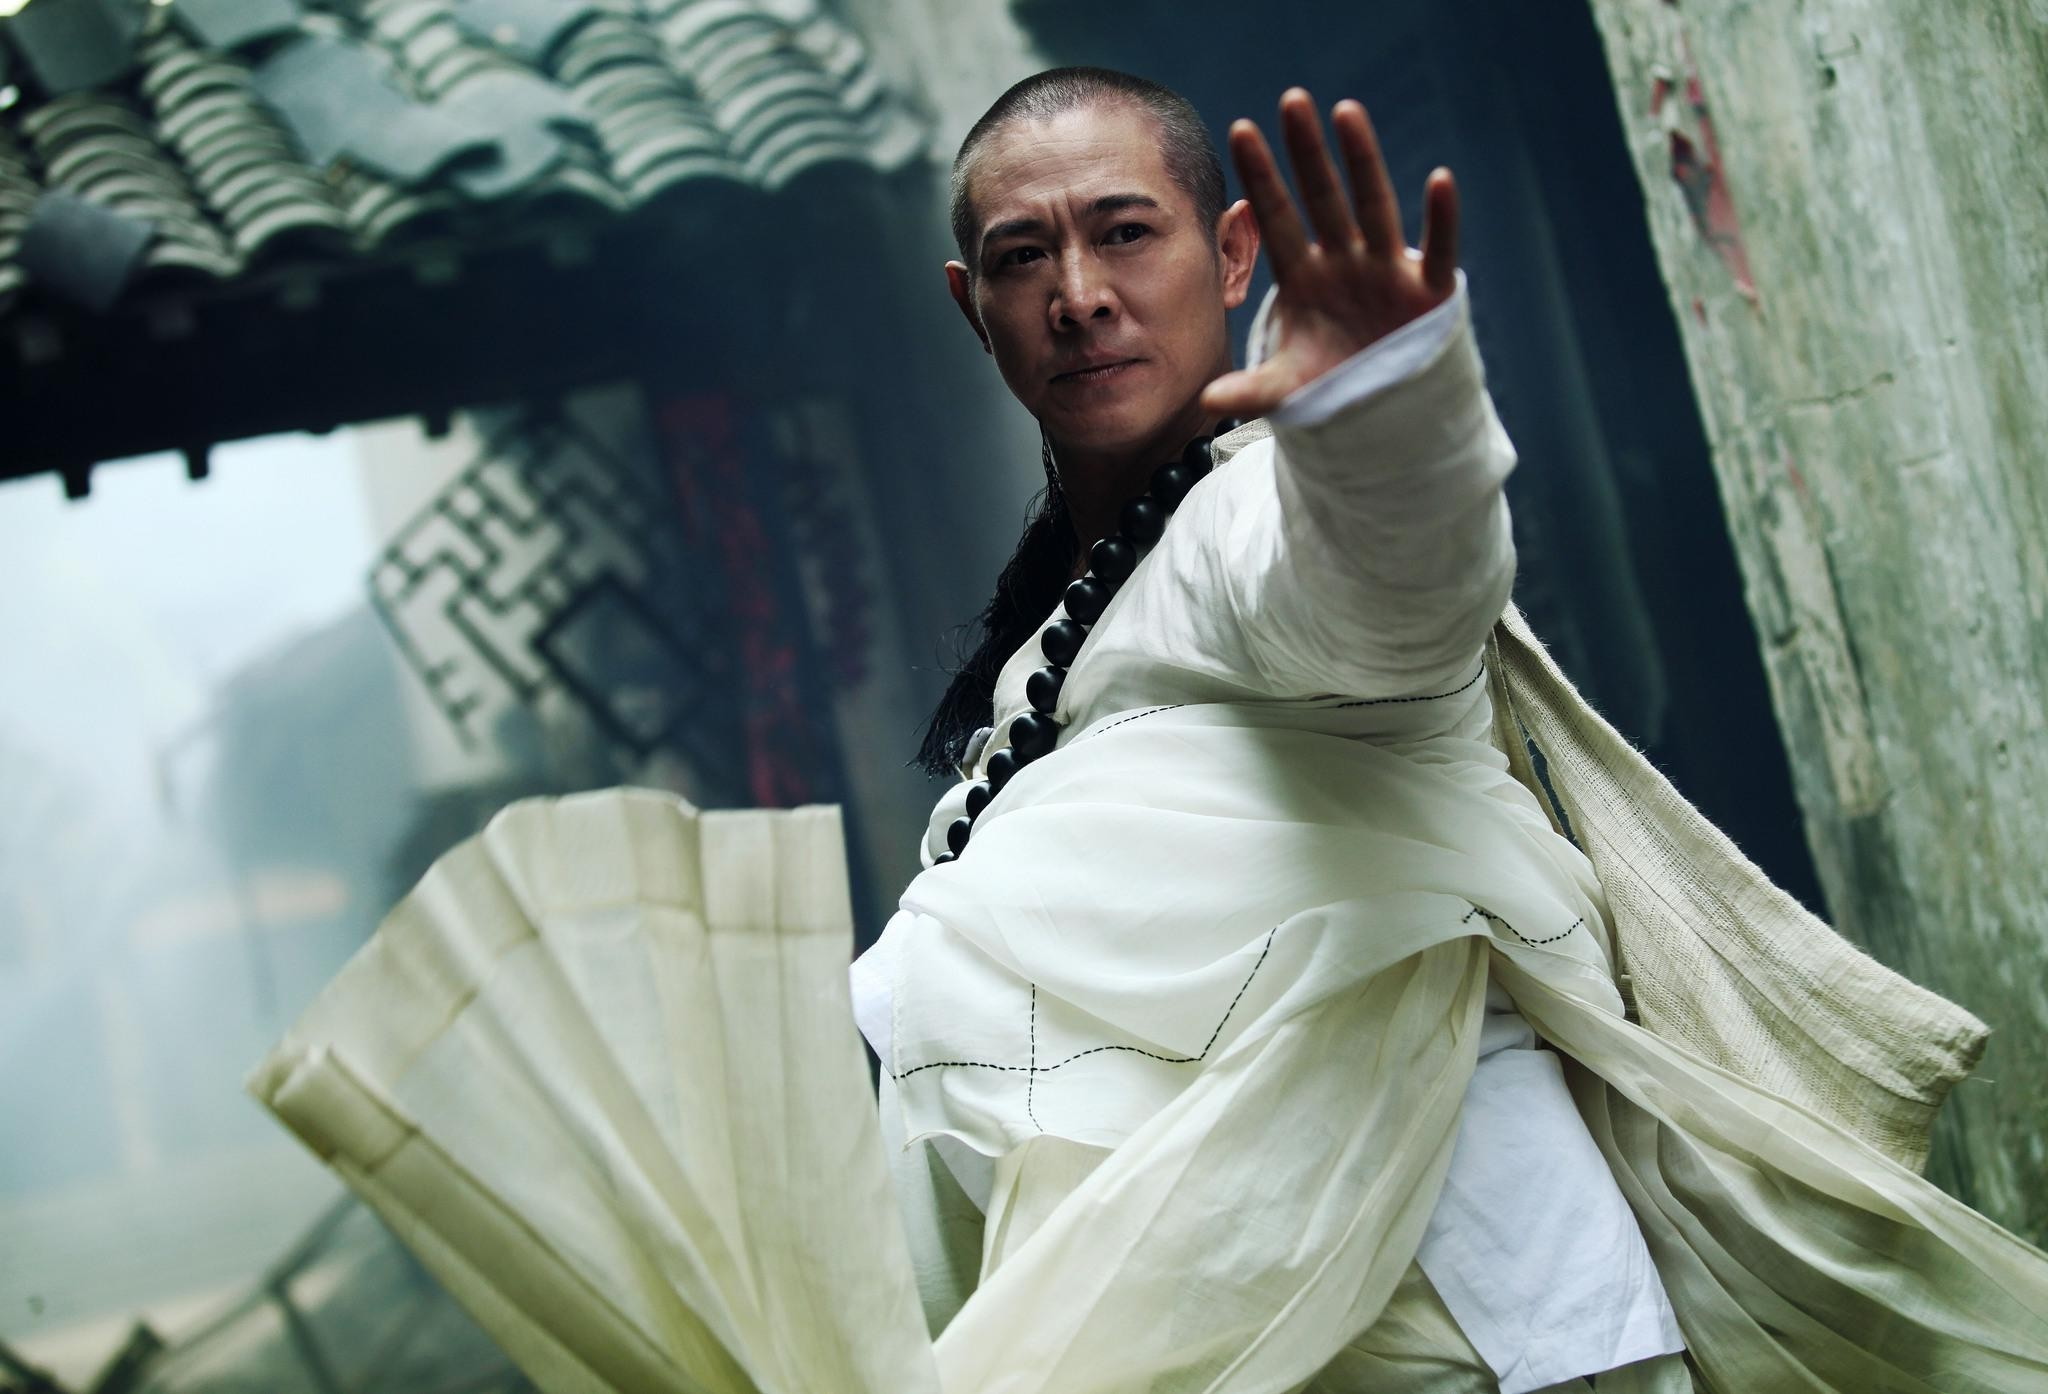 4 Hd Jet Li Wallpapers Hdwallsource Com